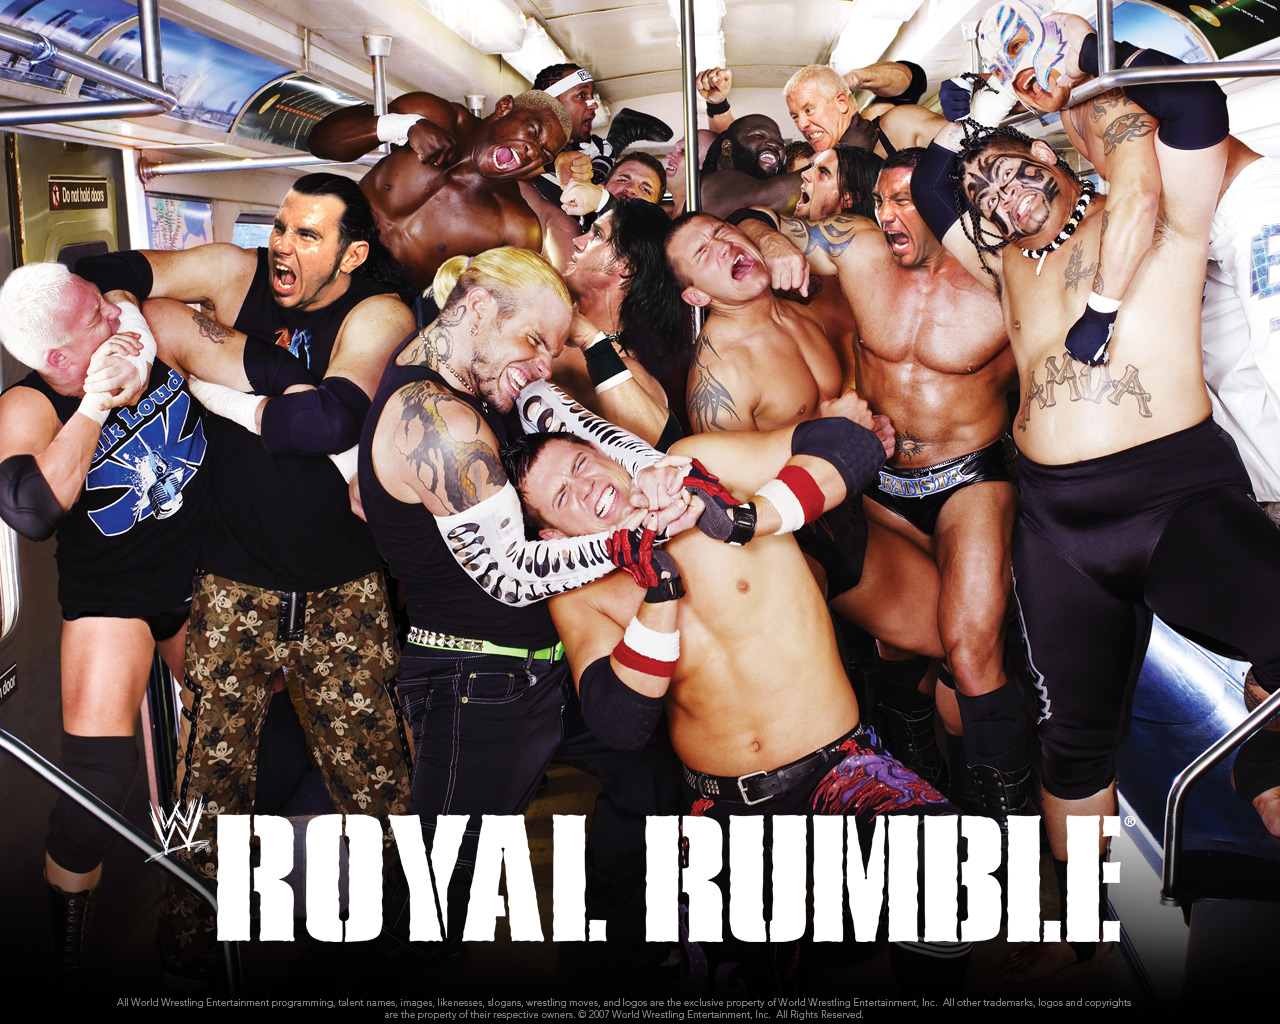 Royal Rumble 2008 - Professional Wrestling 1280x1024